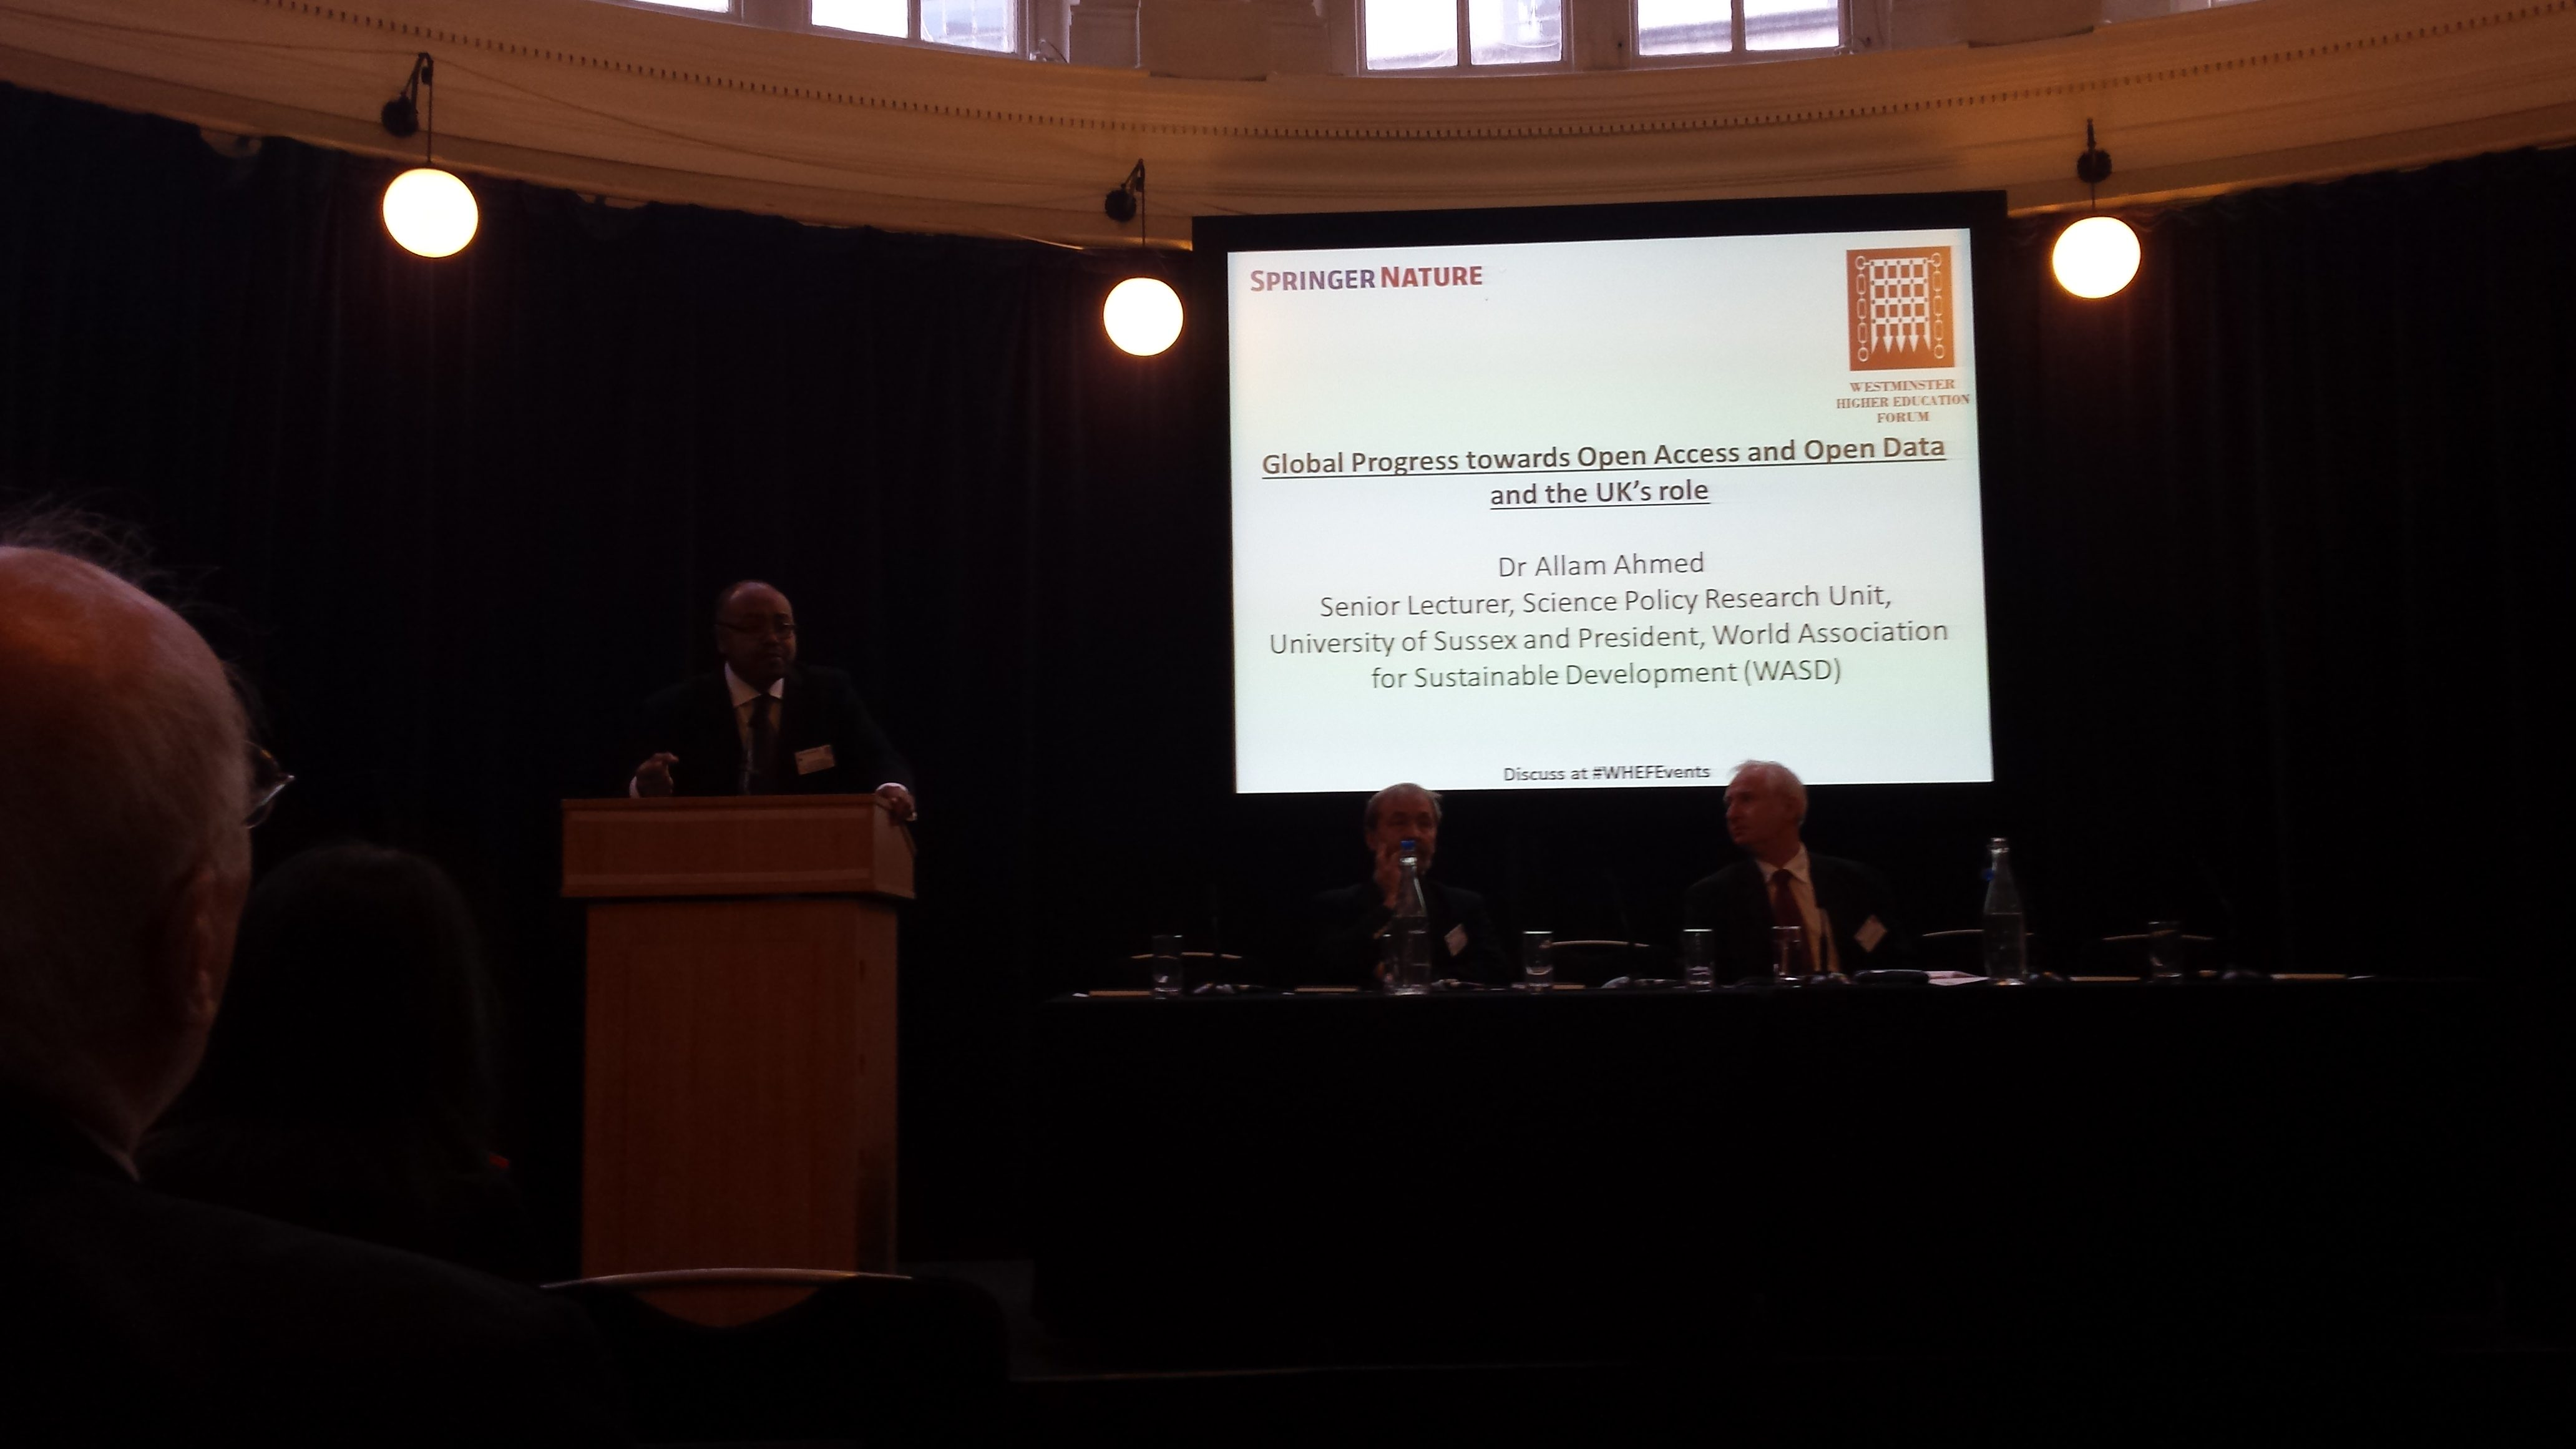 Global progress towards open access and open data and the UK's role